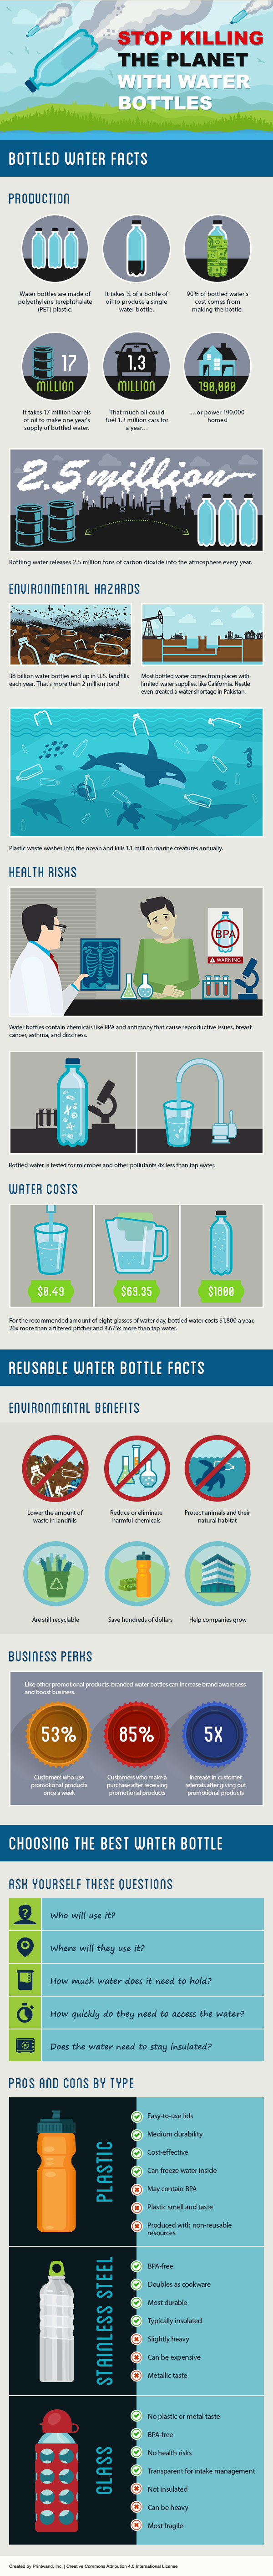 Plastic Water Bottle Pollution [Infographic]: Facts & Environmental Effects of Bottled Water